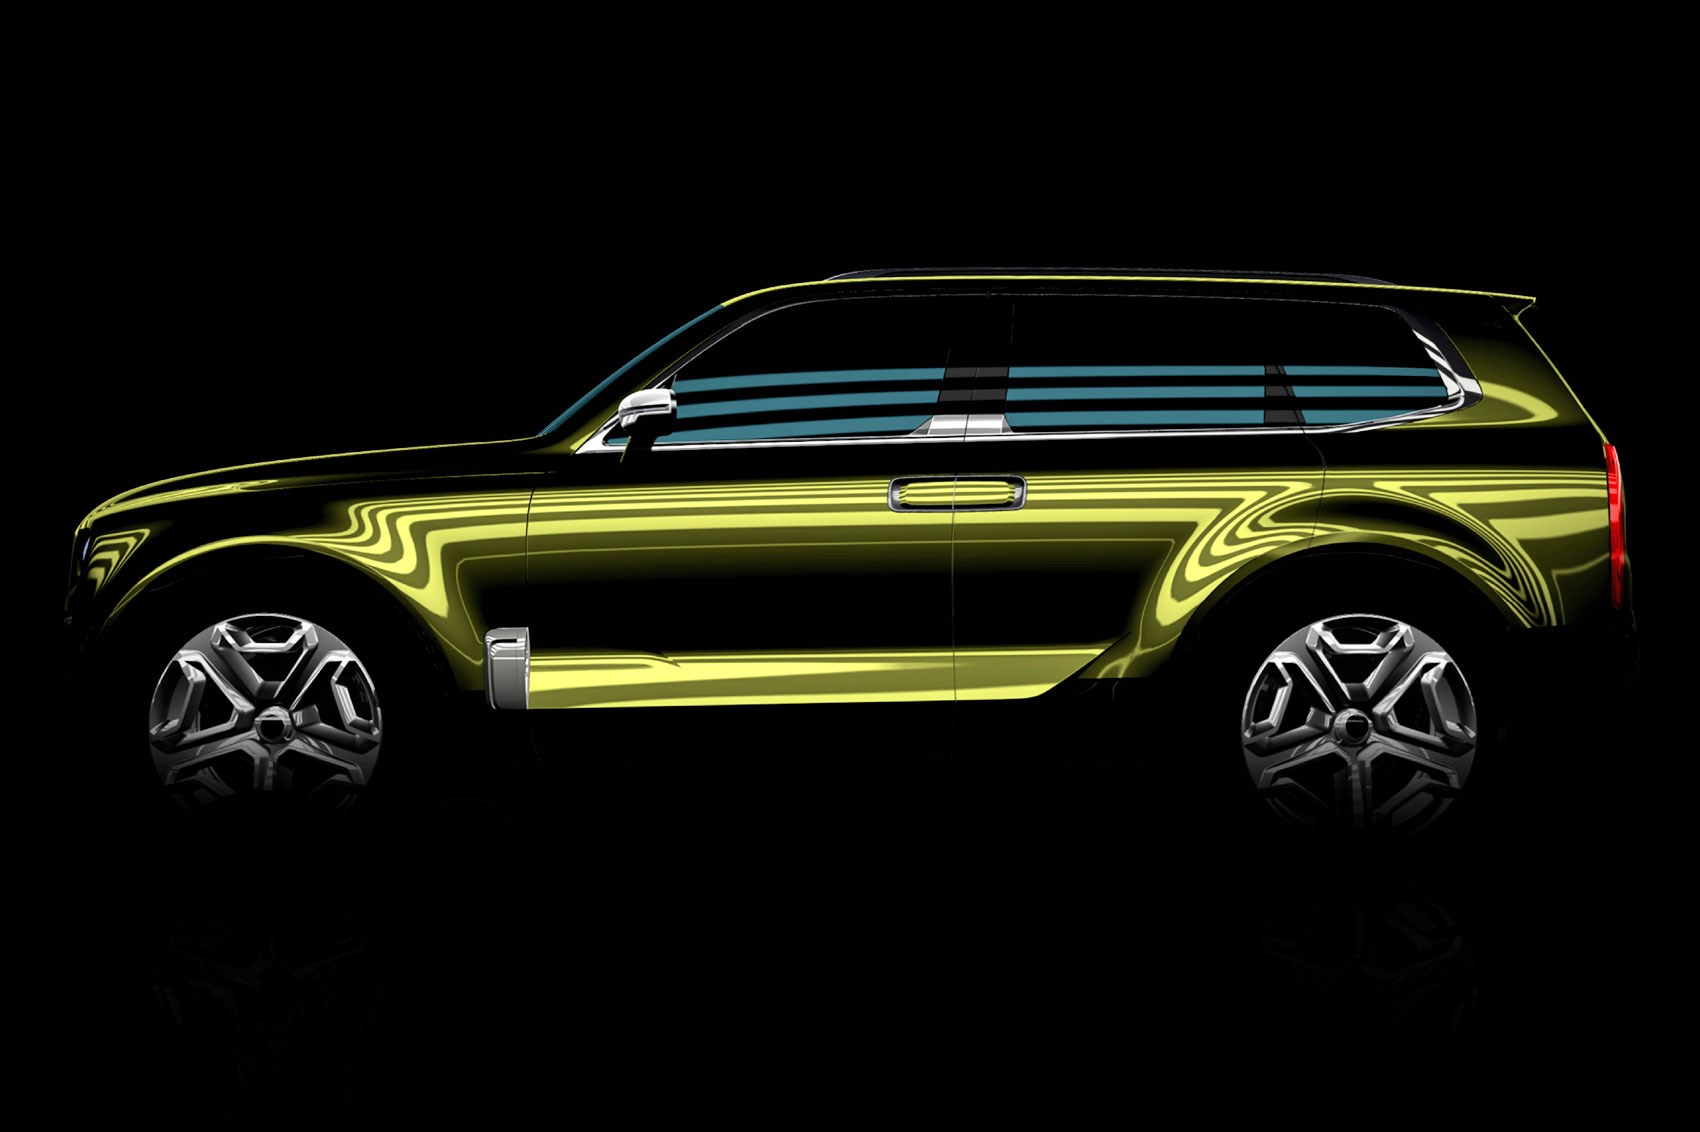 New Kia KCD12 SUV Concept Set For Detroit Motor Show 2016